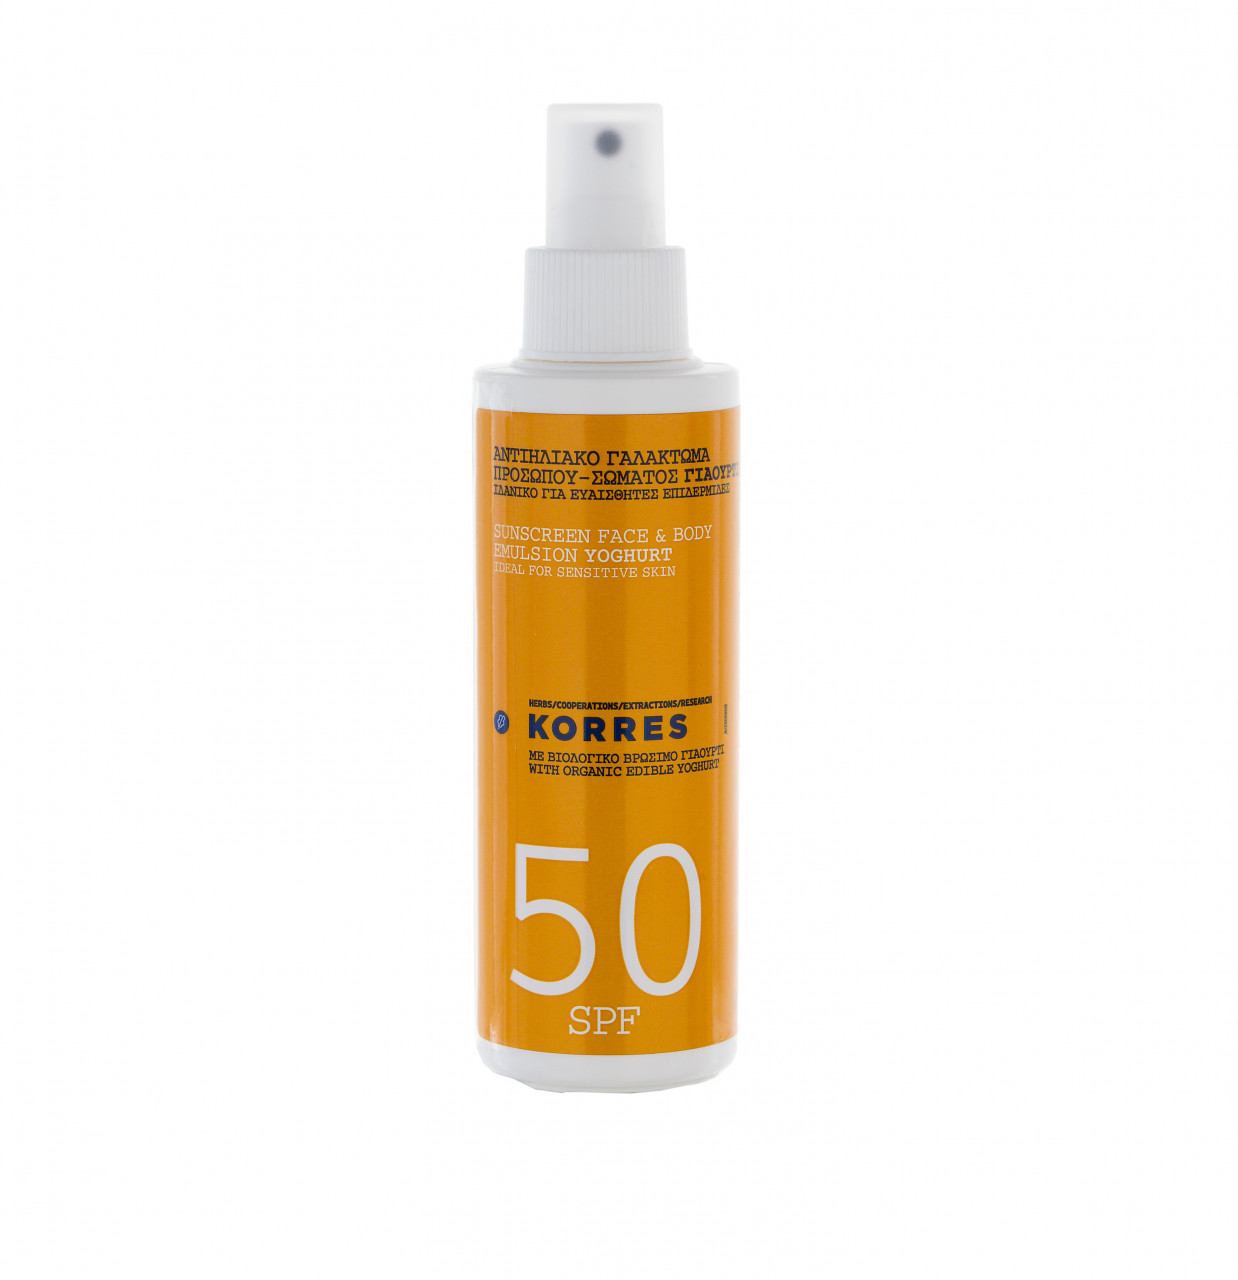 korres-natural-products-yoghurt-sonnenemulsion-spf-50-sonnenpflege